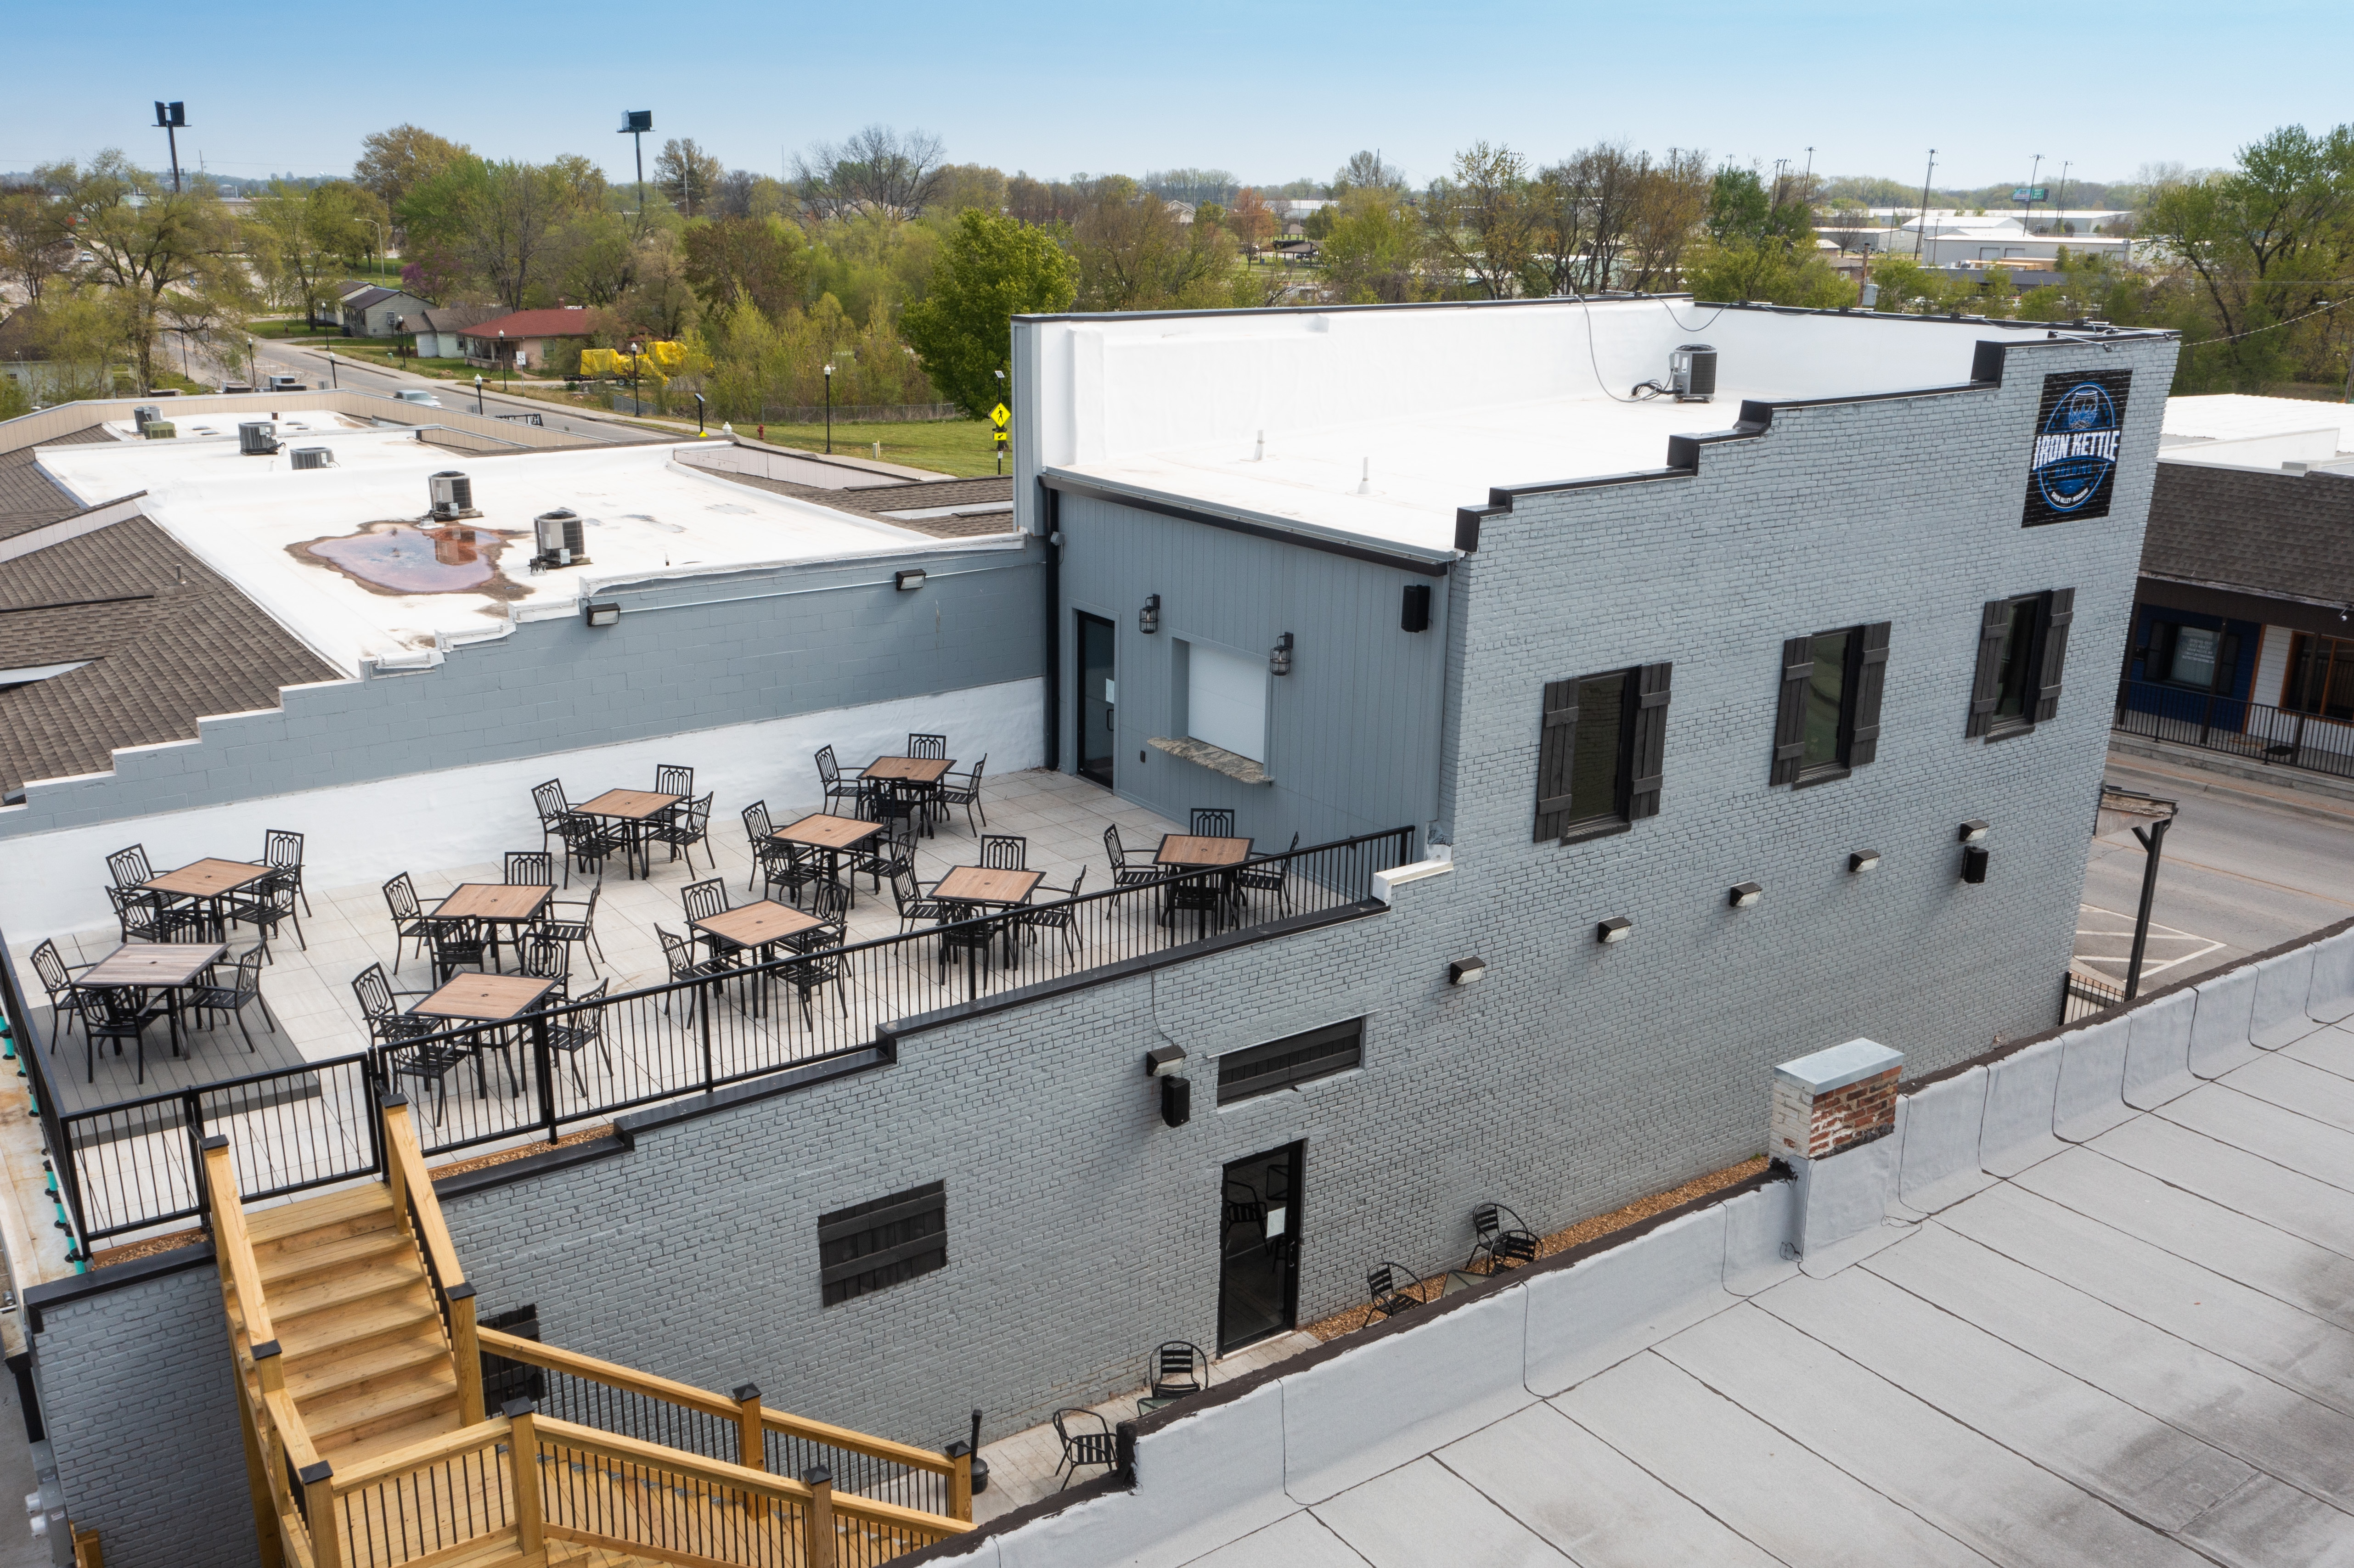 Iron Kettle Brewing